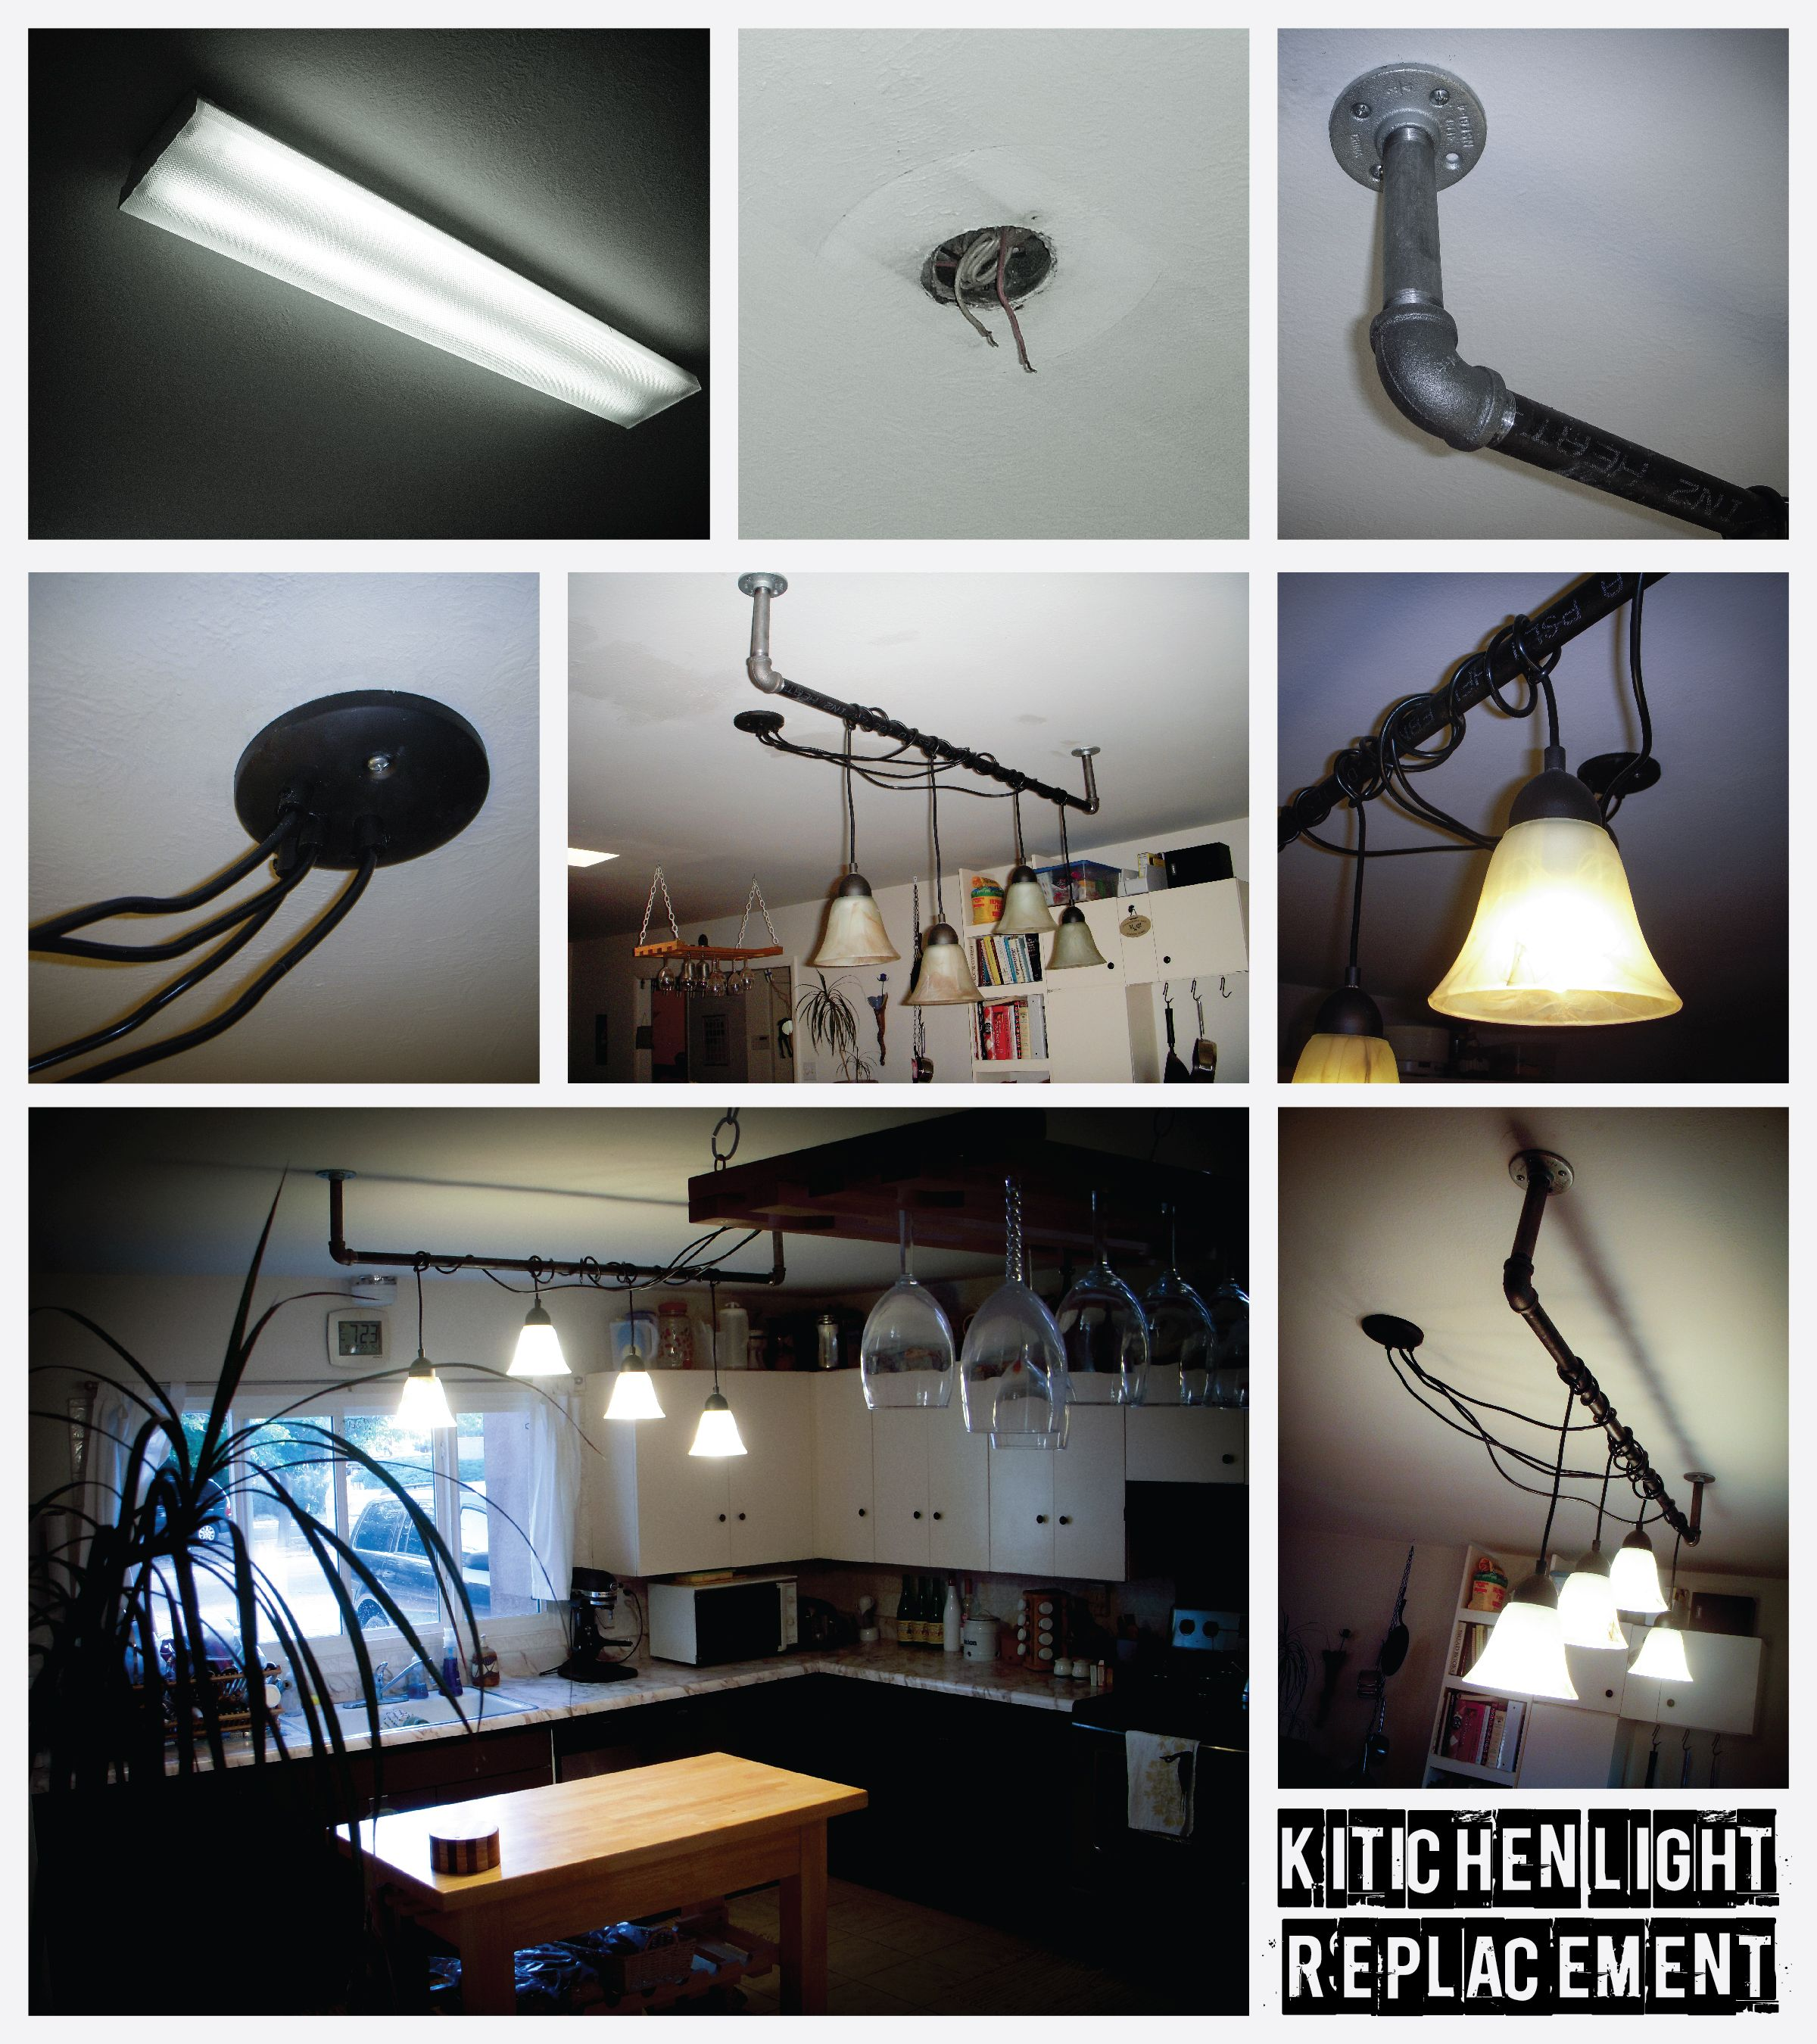 Fluorescent Kitchen Light Replacement Project. Industrial